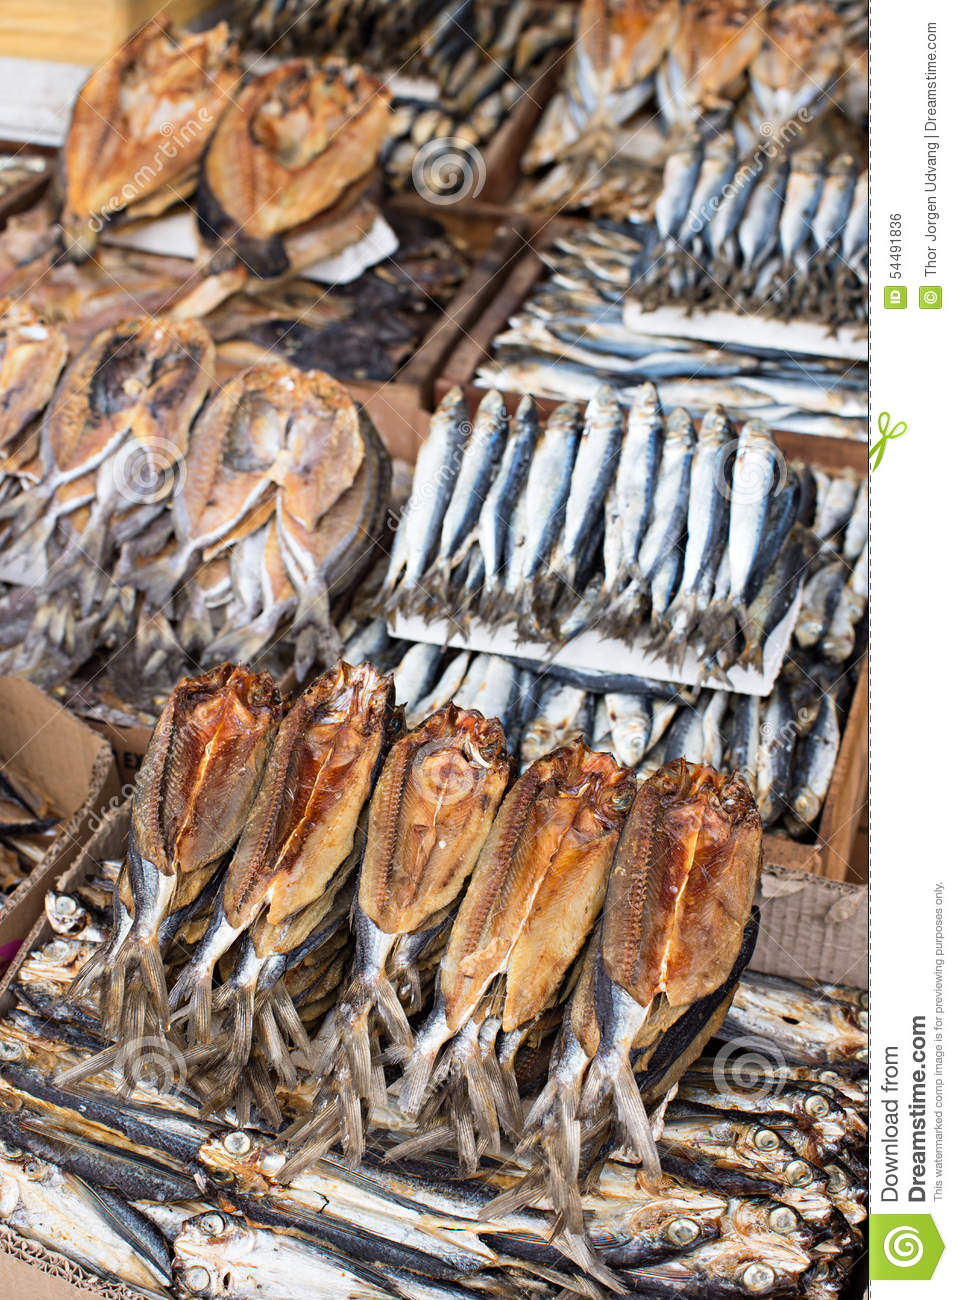 Dried Fish At A Market Stock Photo Image Of Retail Catch